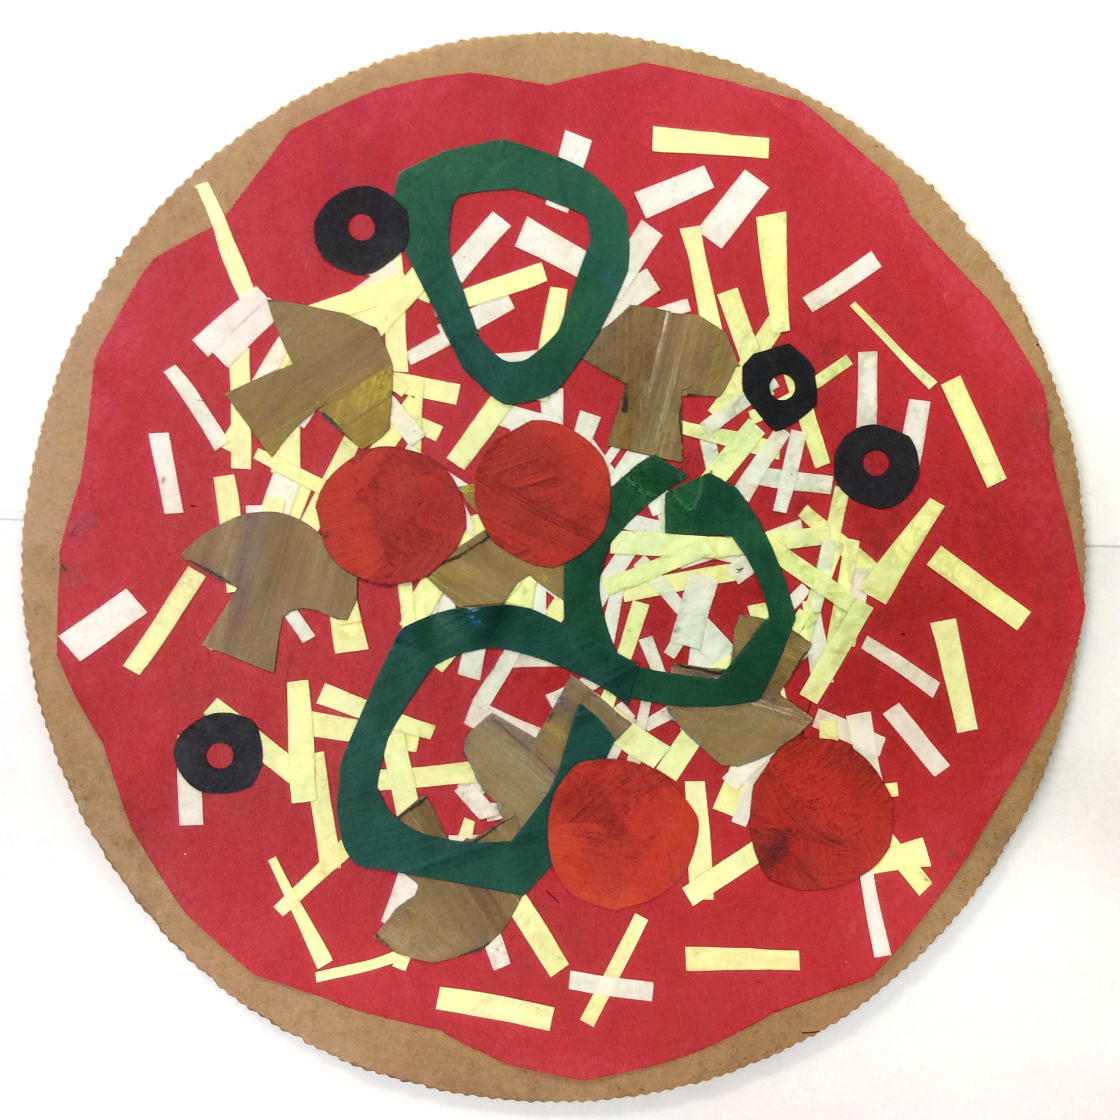 Cardboard & Paper Collage Pizzas